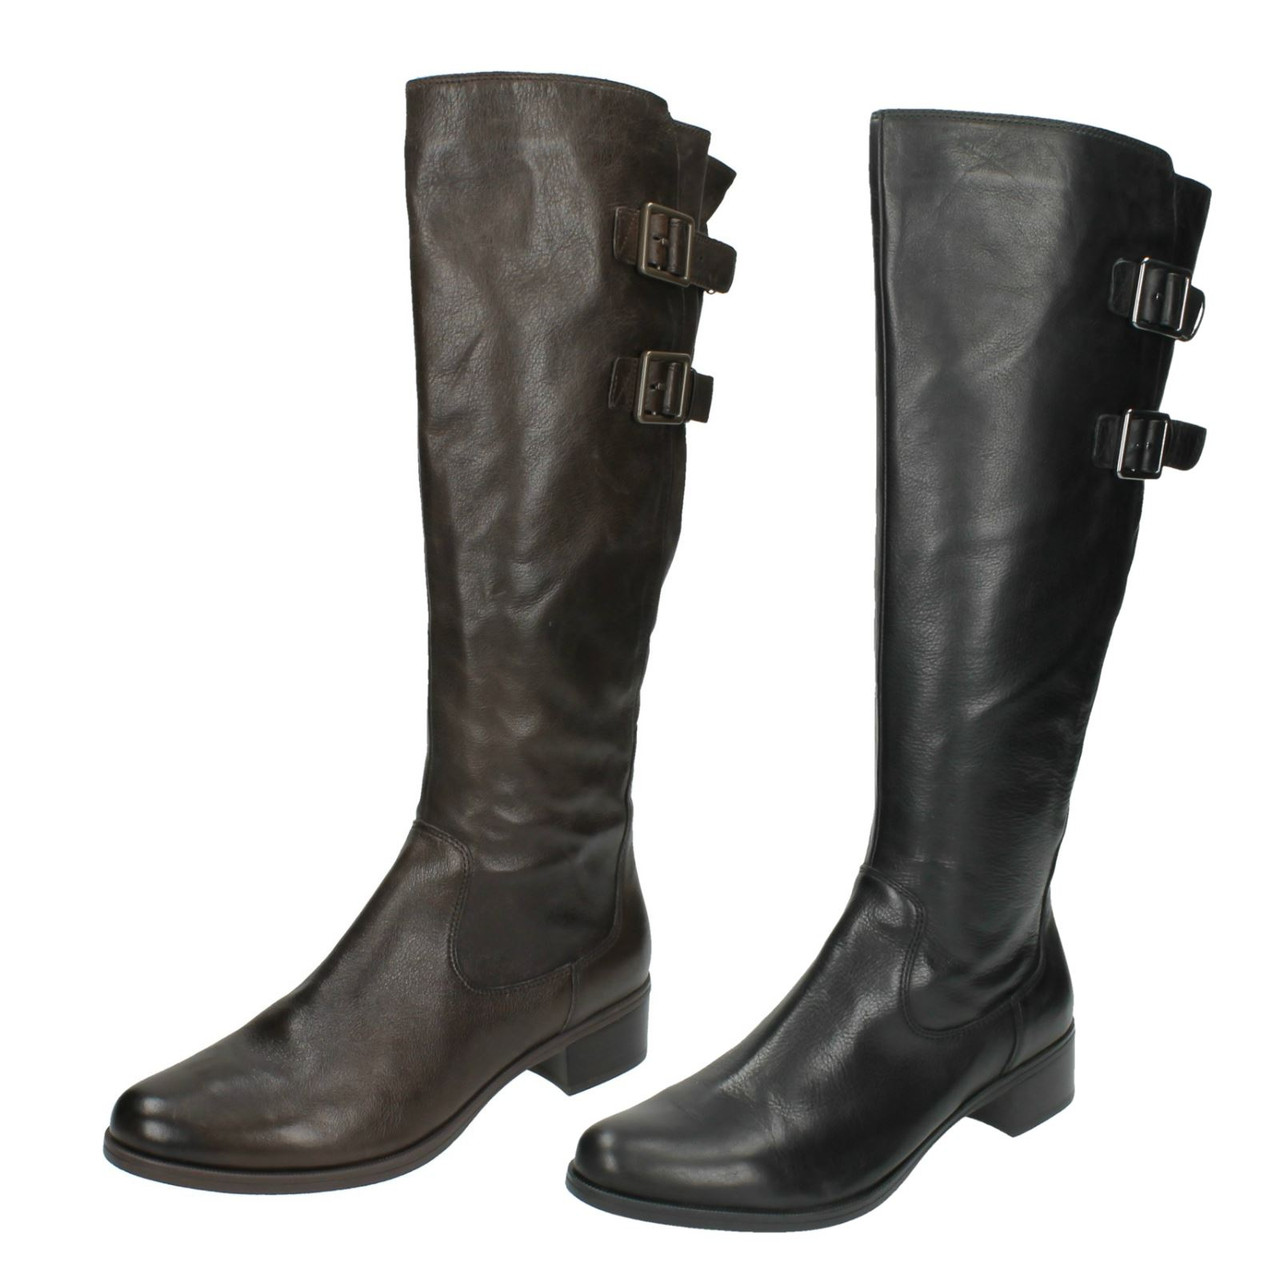 Ladies Clarks Knee High Boots Likeable Me